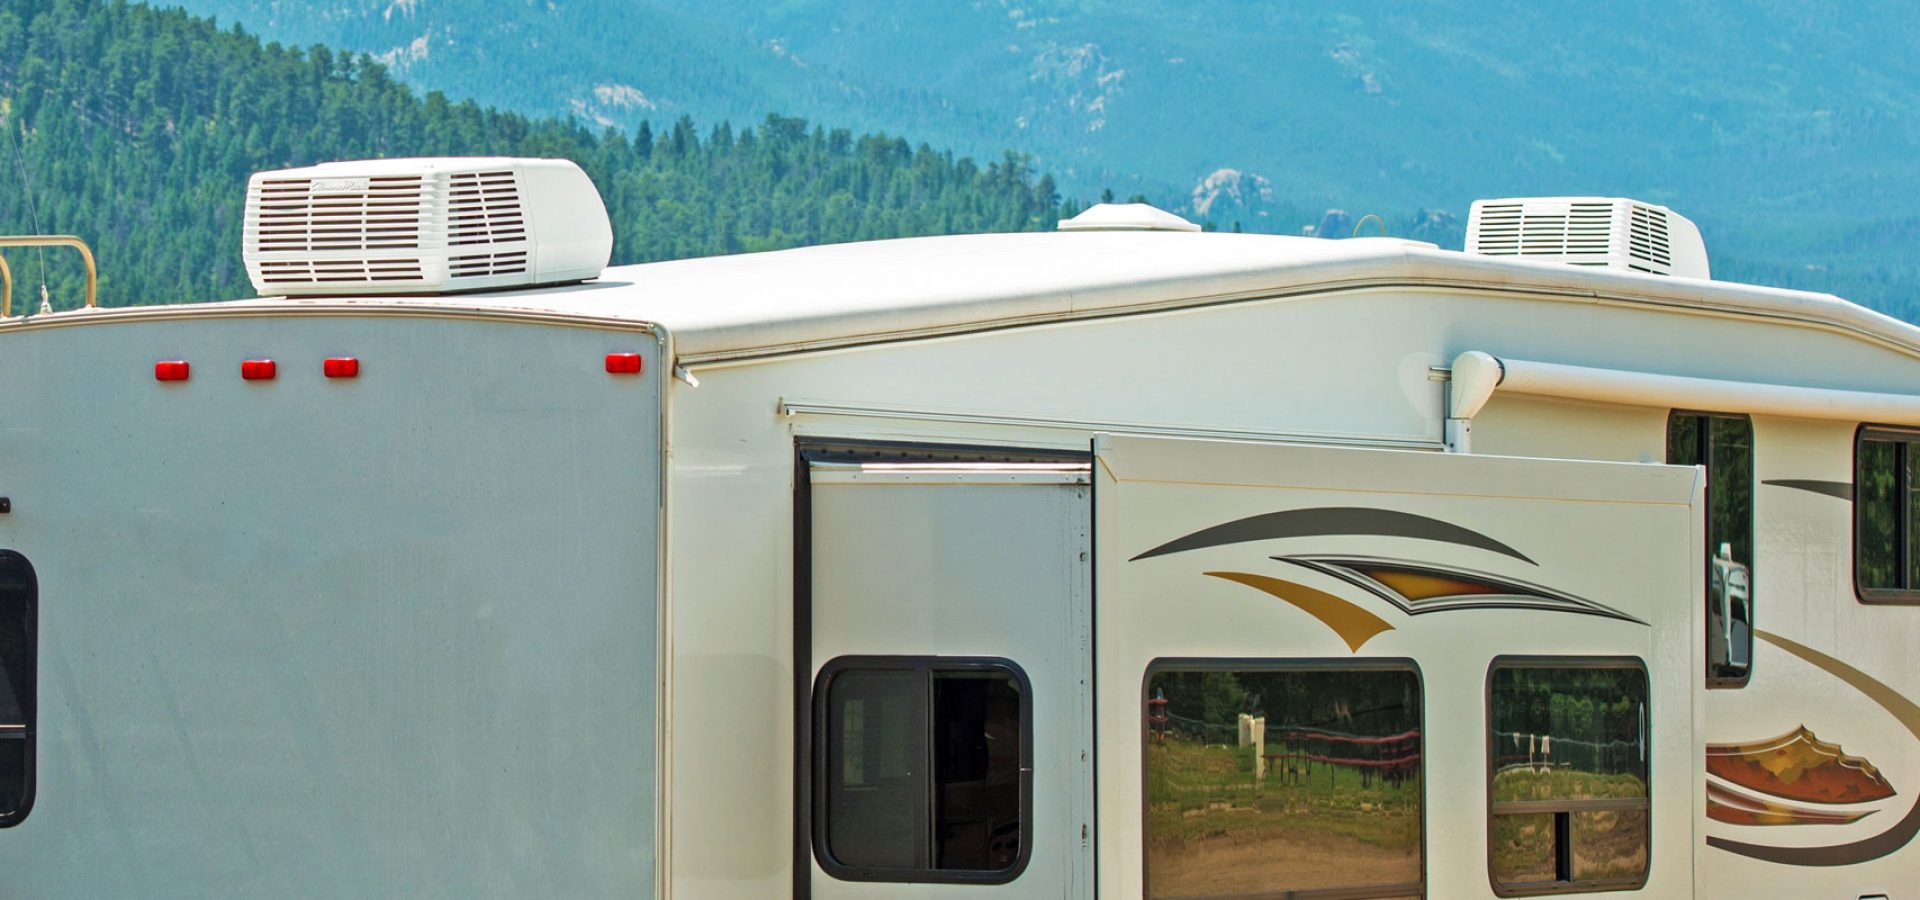 Does Your RV Need a Roof Replacement?